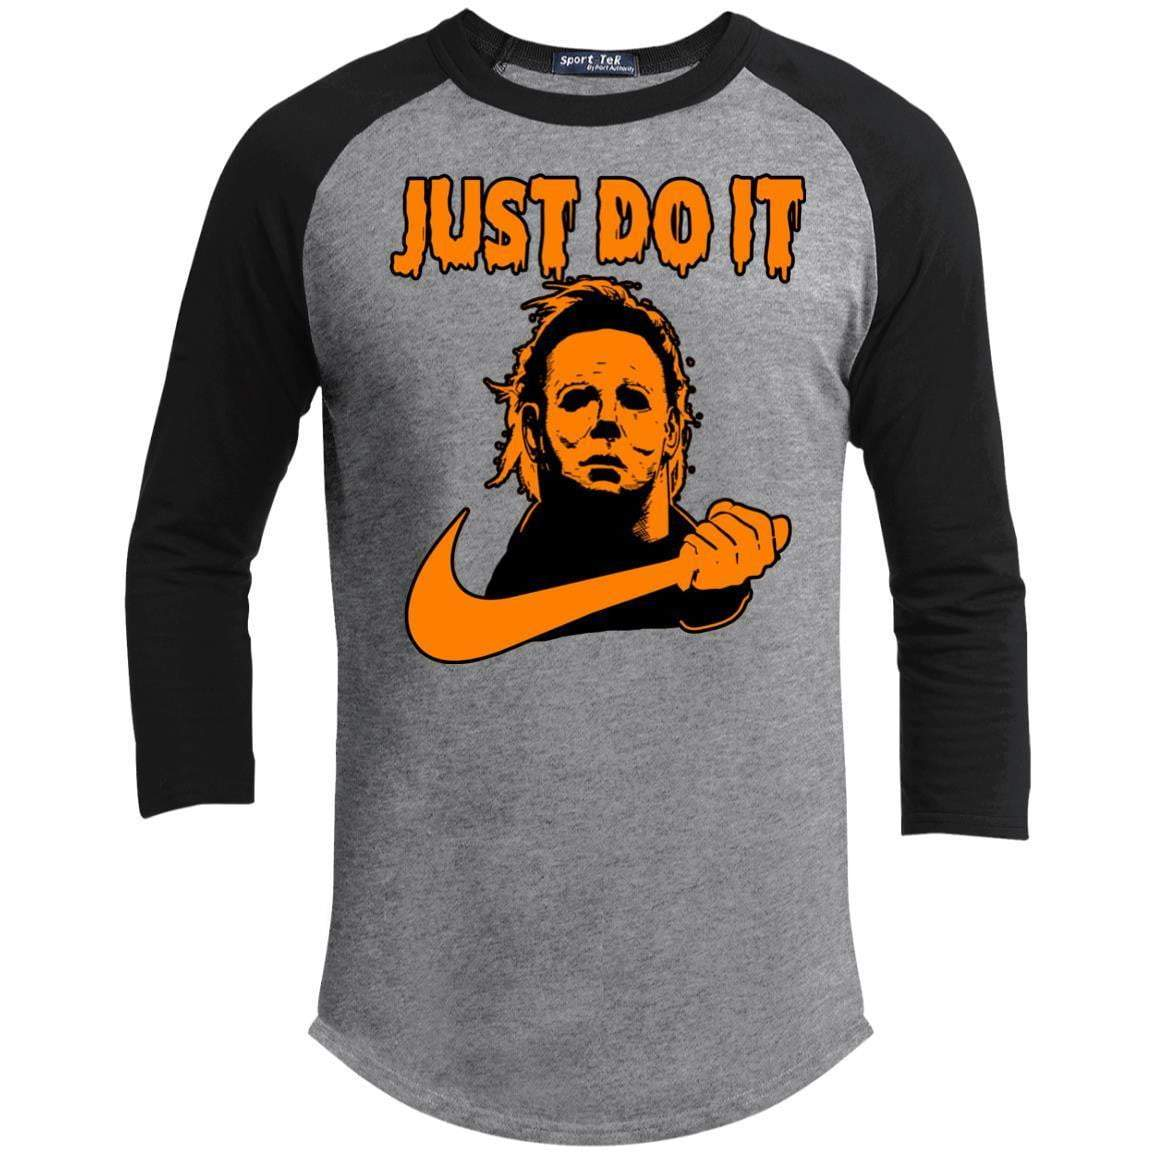 JUST DO IT Unisex 3/4 Sleeve Raglan